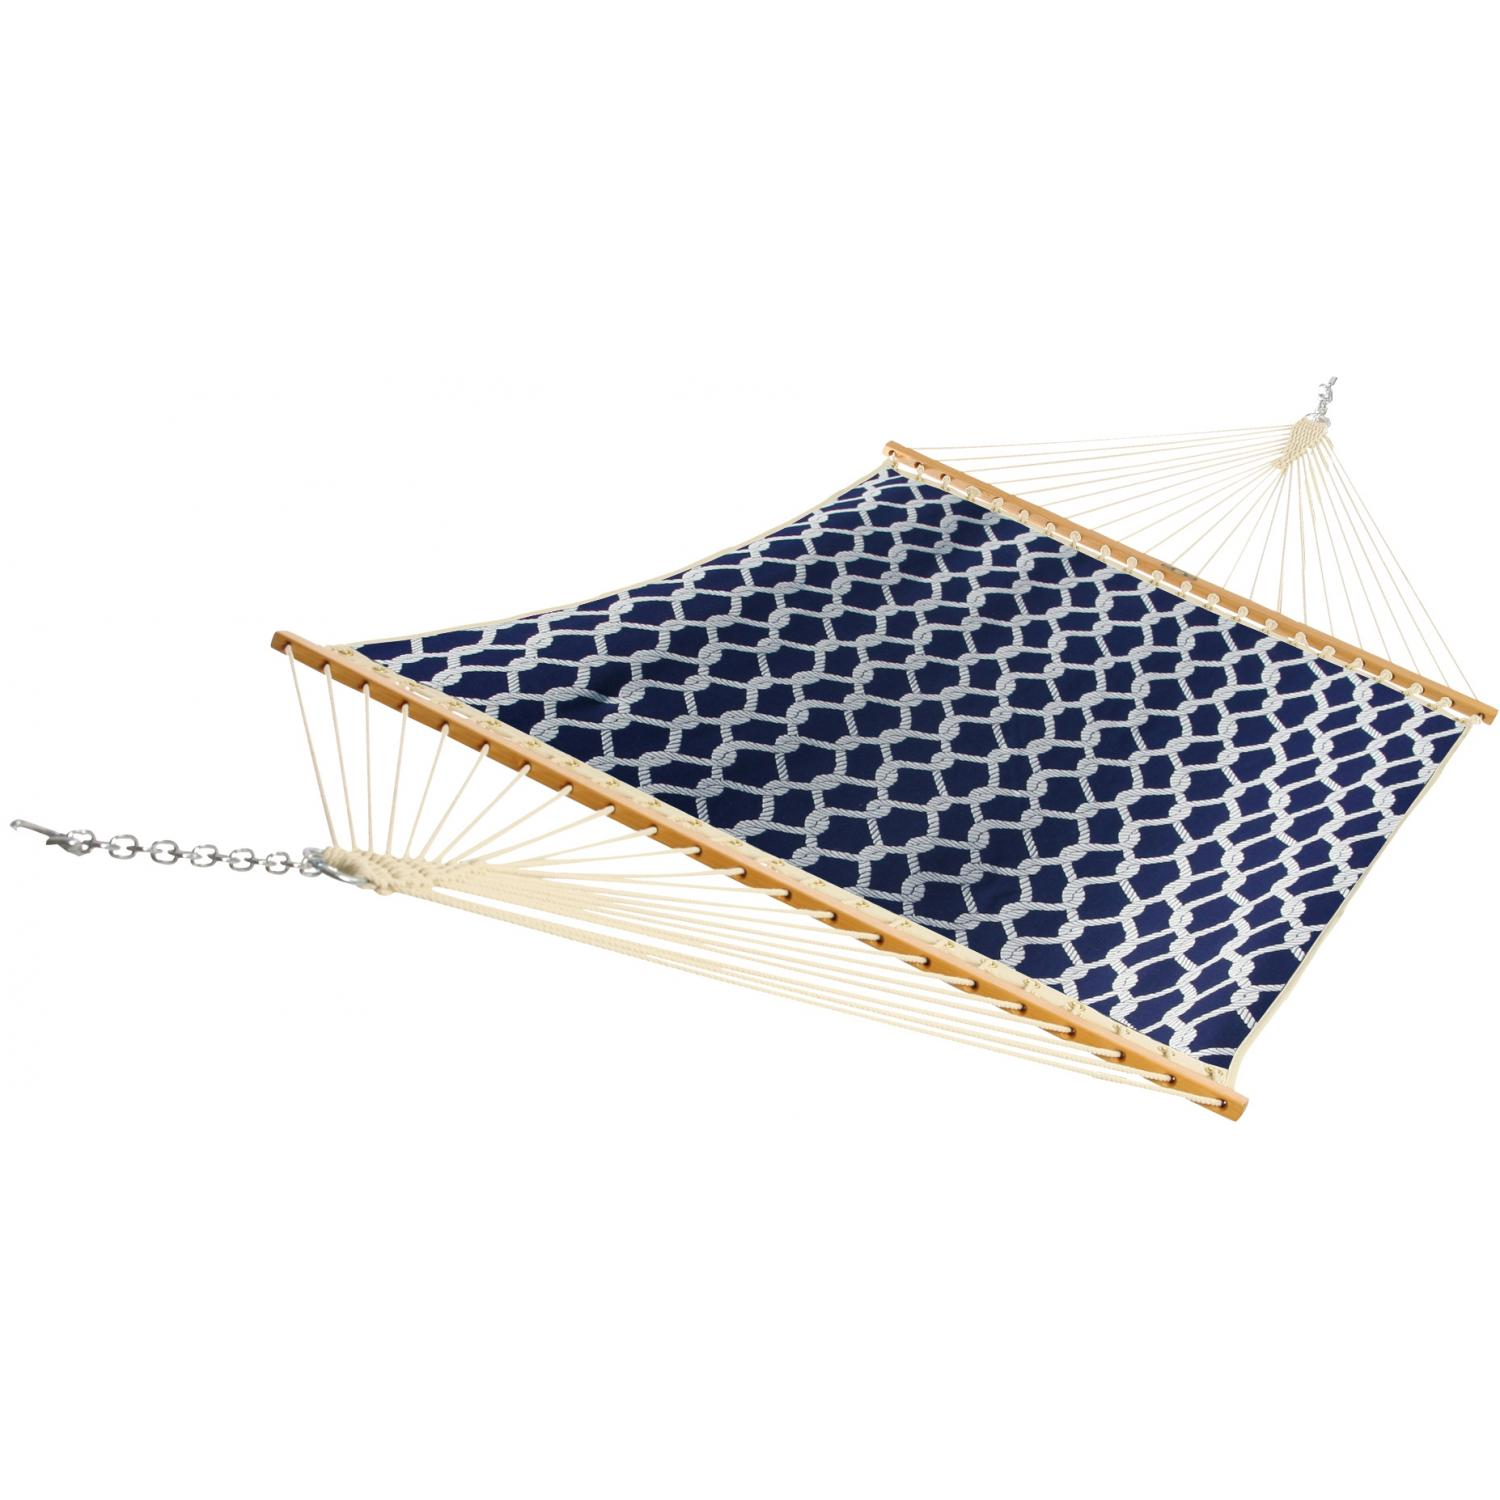 Hatteras Hammocks FMN Large Quick-Dry Comfort Hammock - Nantucket Journey